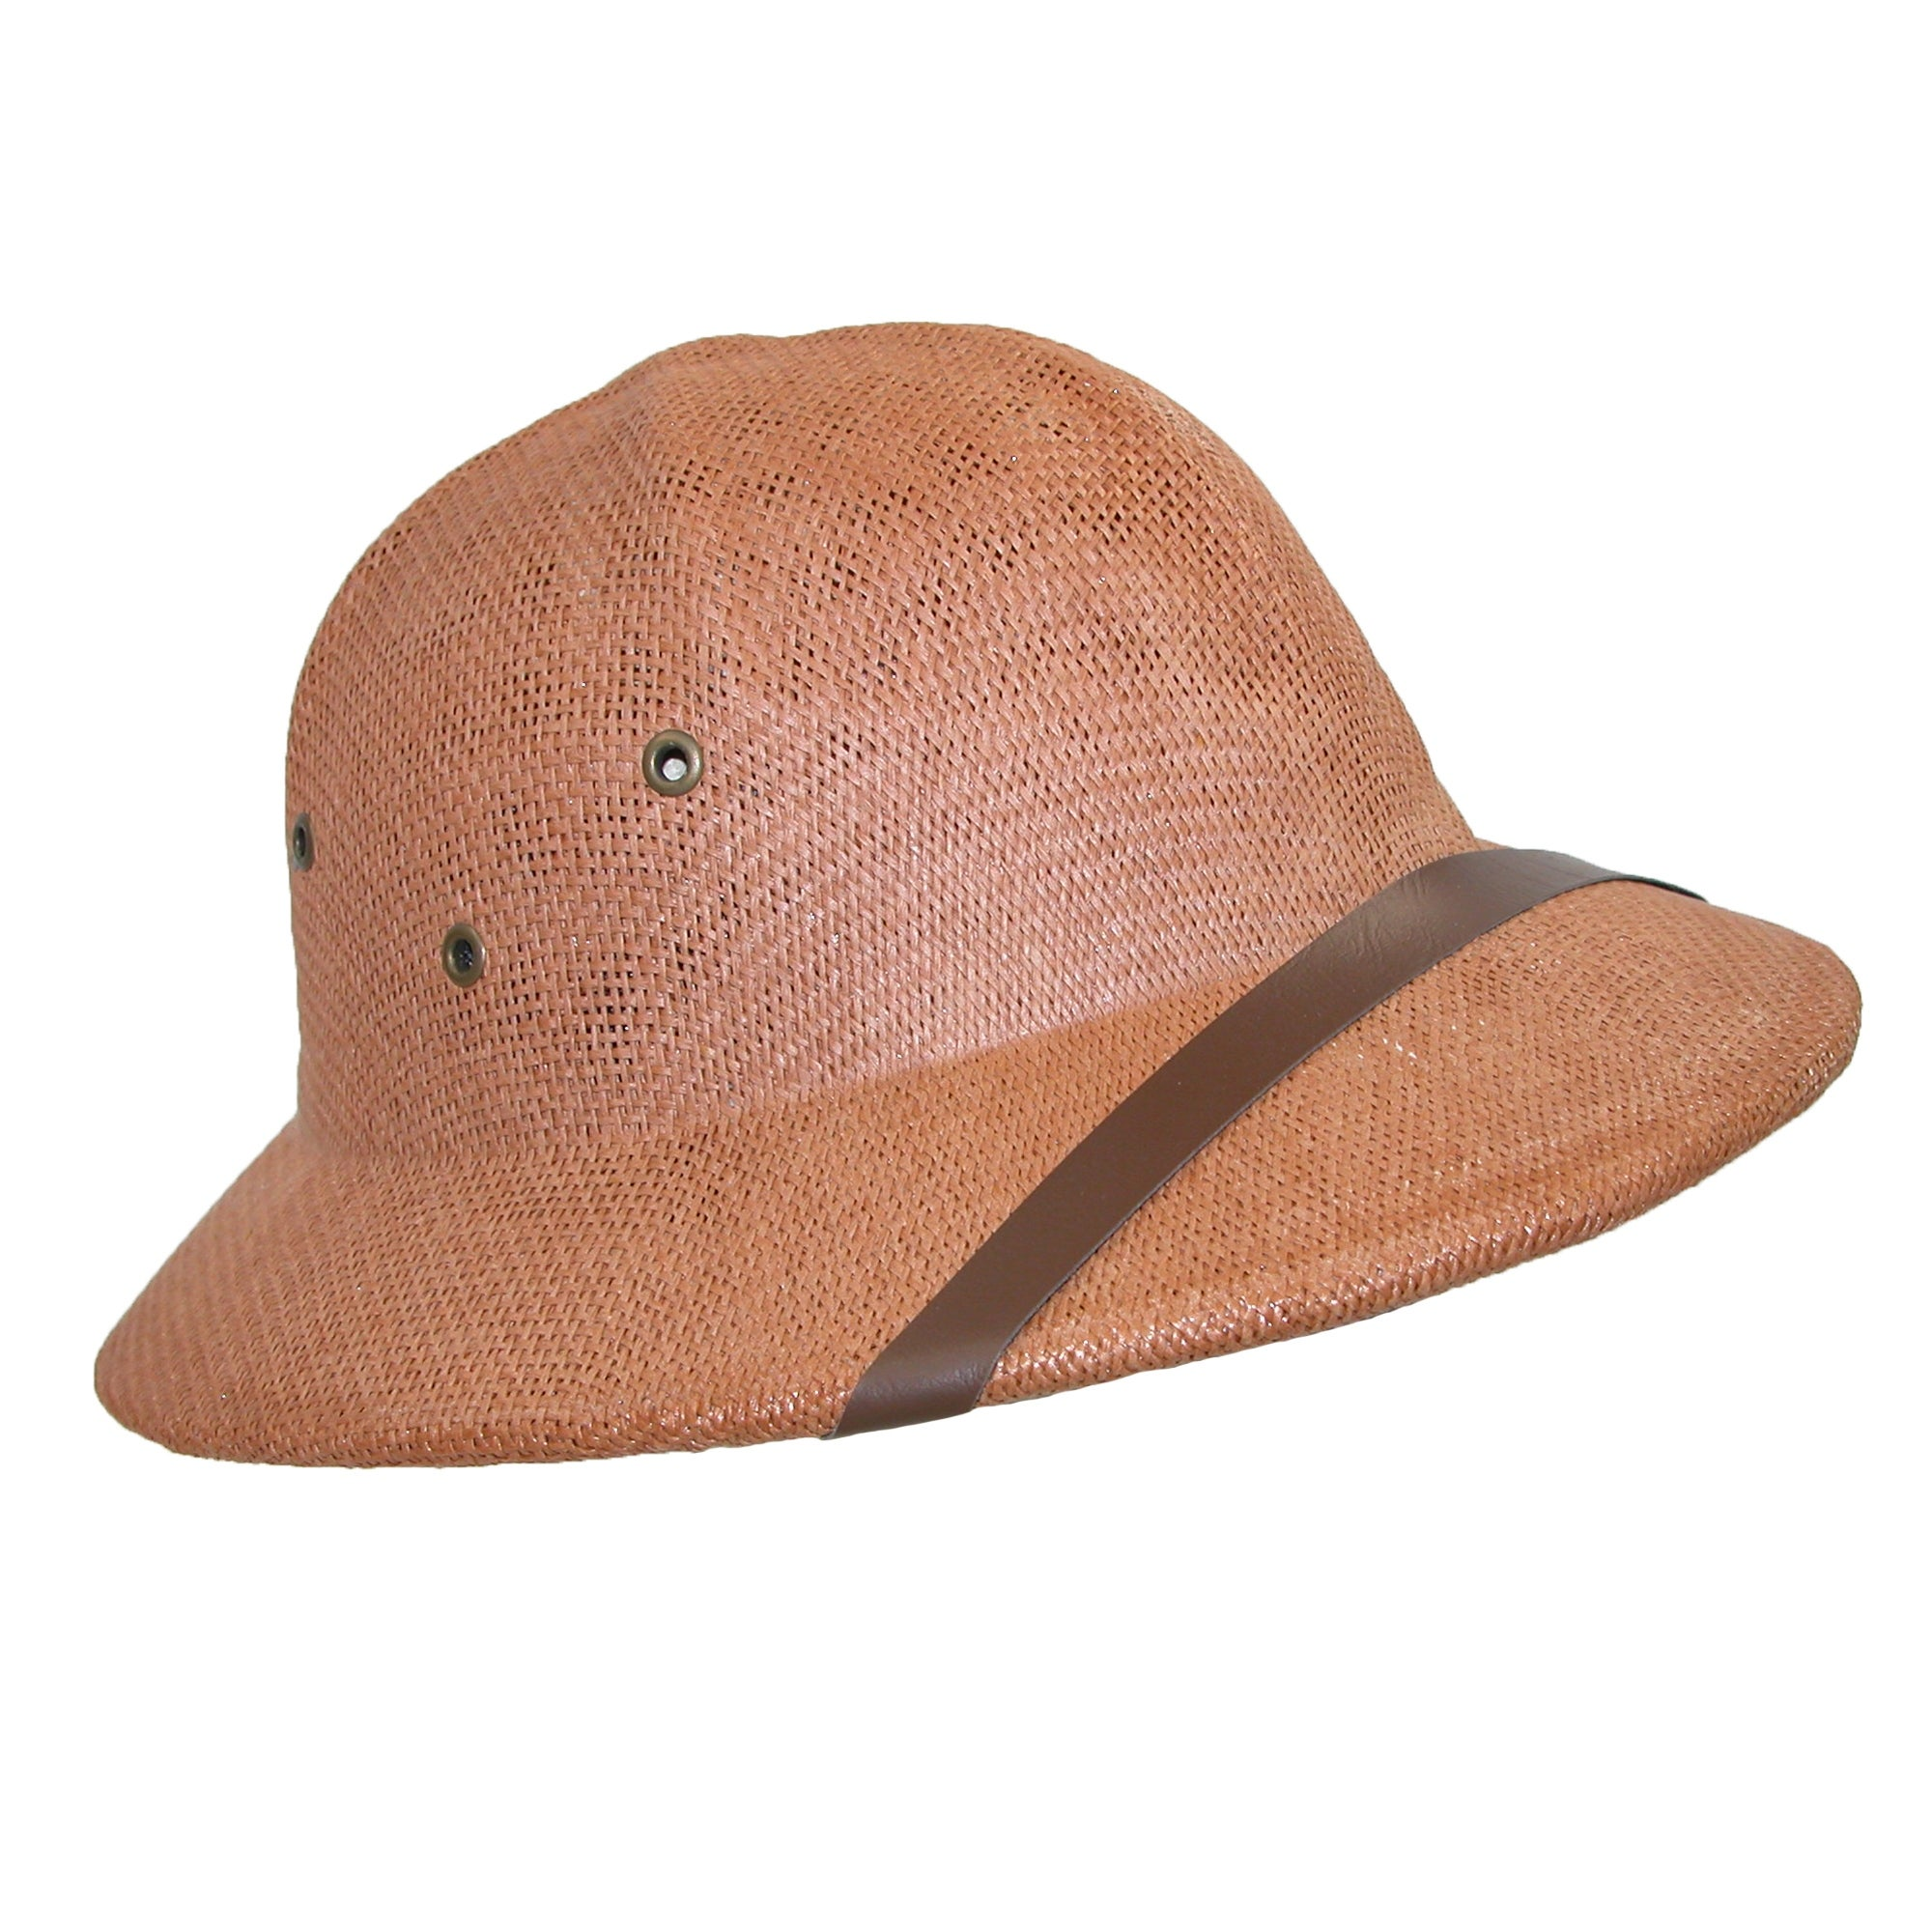 c8bad895a620d Shop CTM® Twisted Toyo Straw Pith Safari Helmet Hat - Free Shipping On  Orders Over  45 - Overstock - 14278805